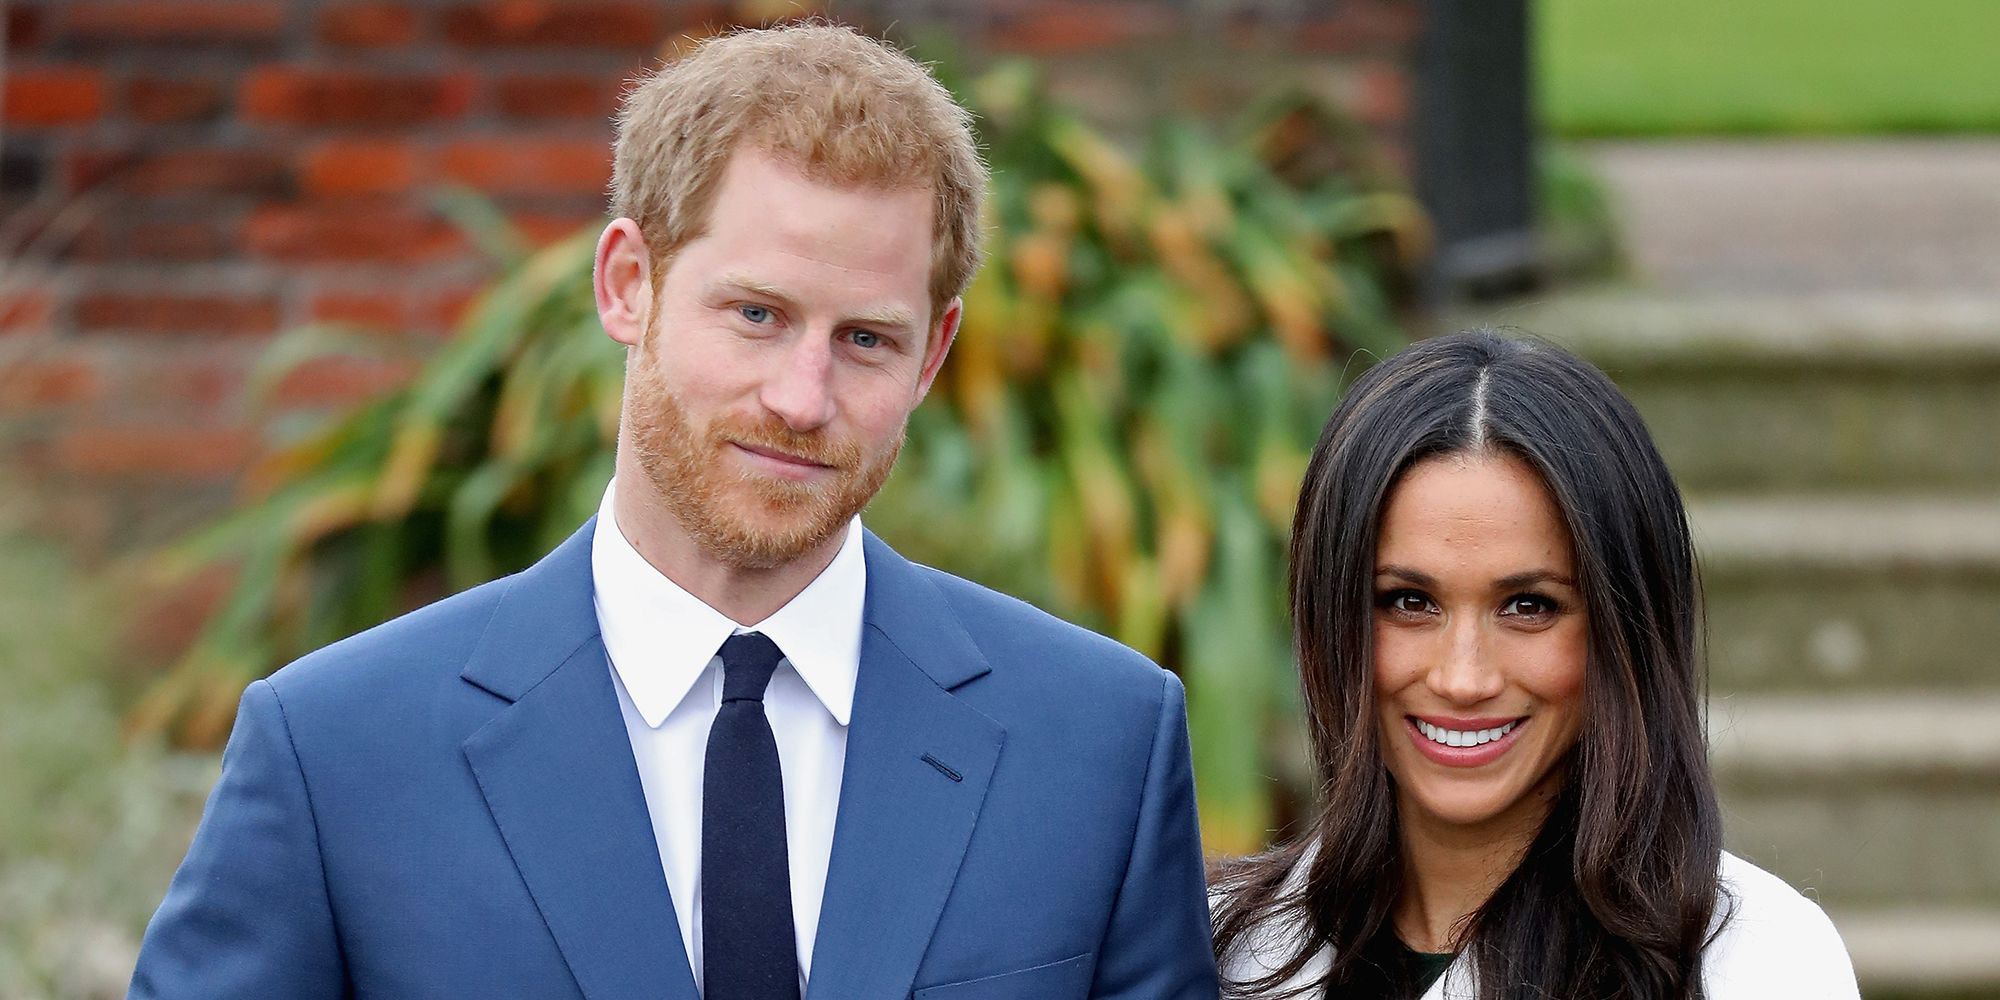 Someone's already worked out what Prince Harry and Meghan Markle's kids will look like